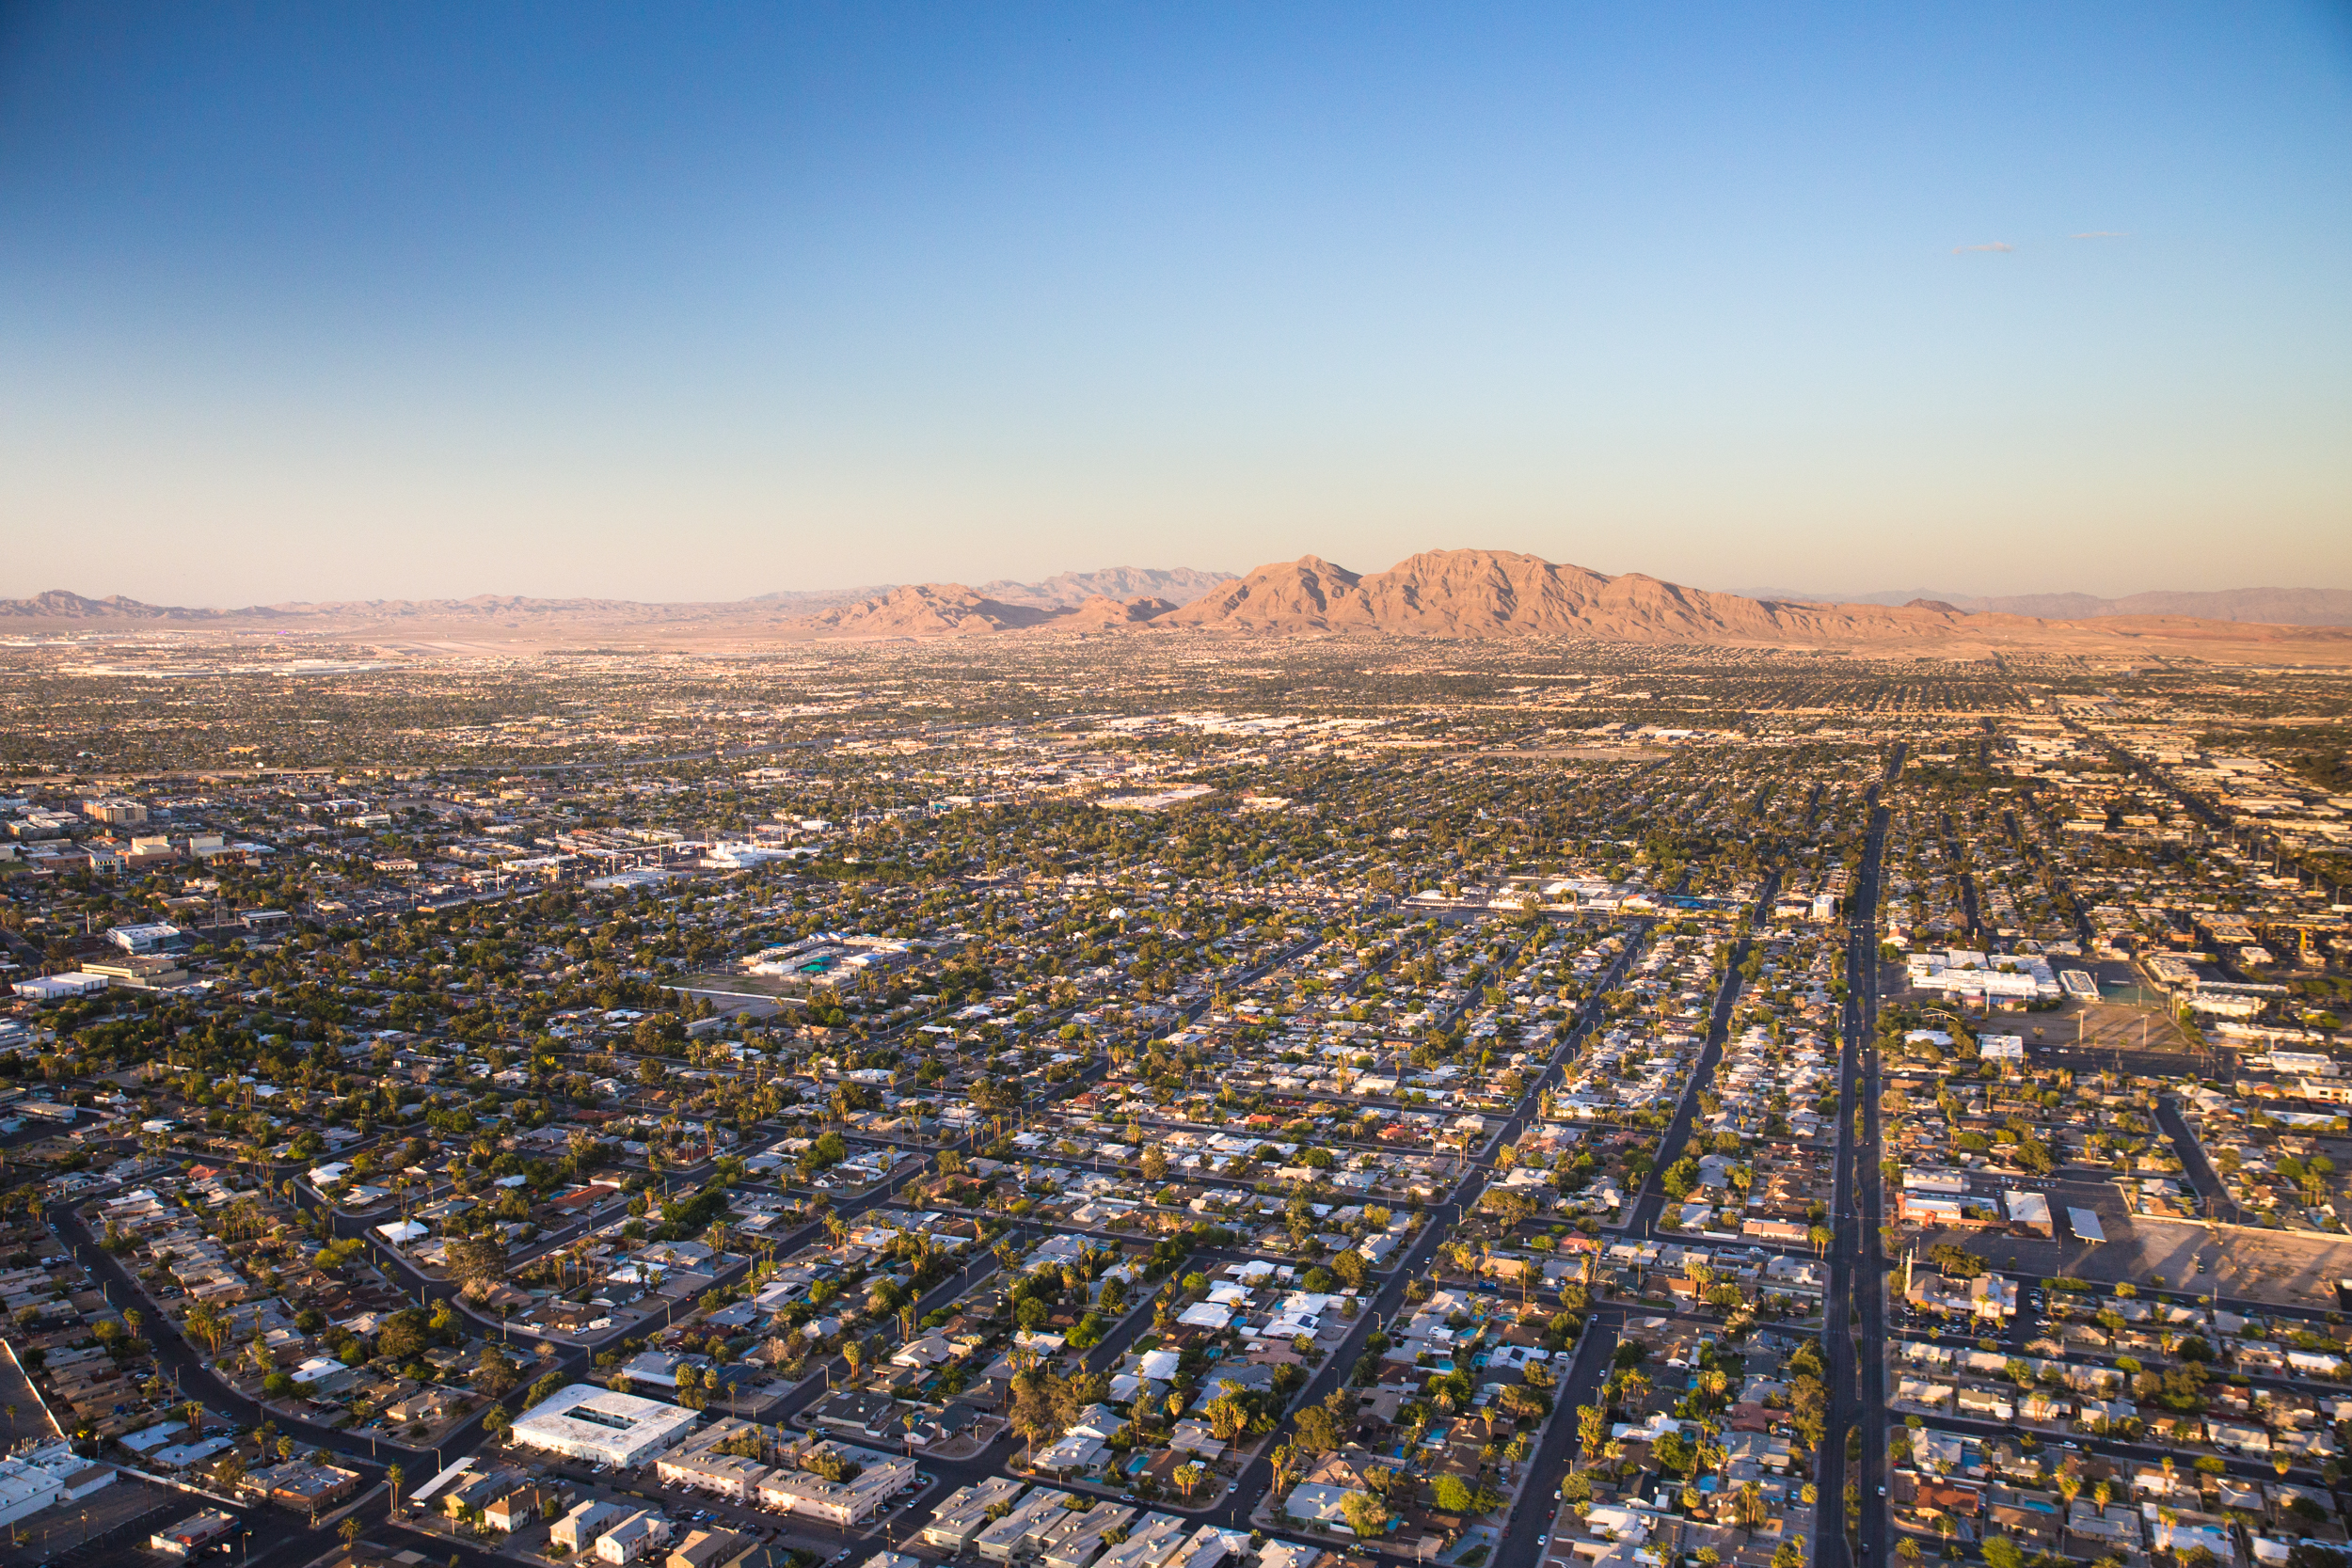 Las Vegas development stretching to horizon. Photo by: iStock/littleny